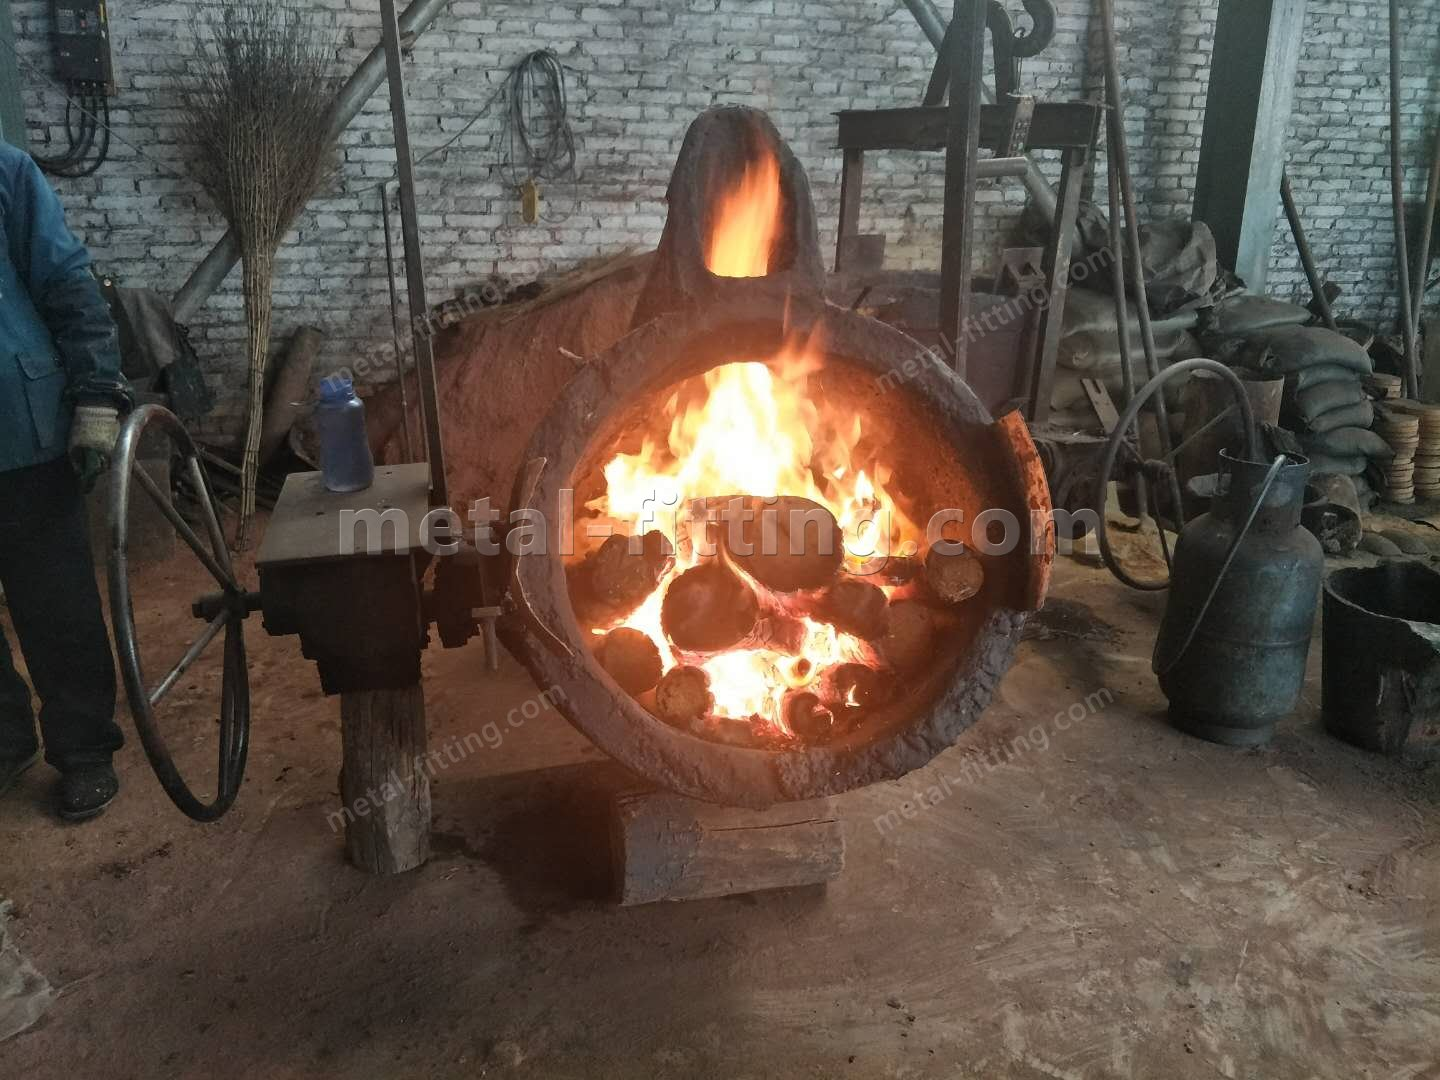 Casted iron Ring Gear and Pulley for concret Mixer-312383611955901193